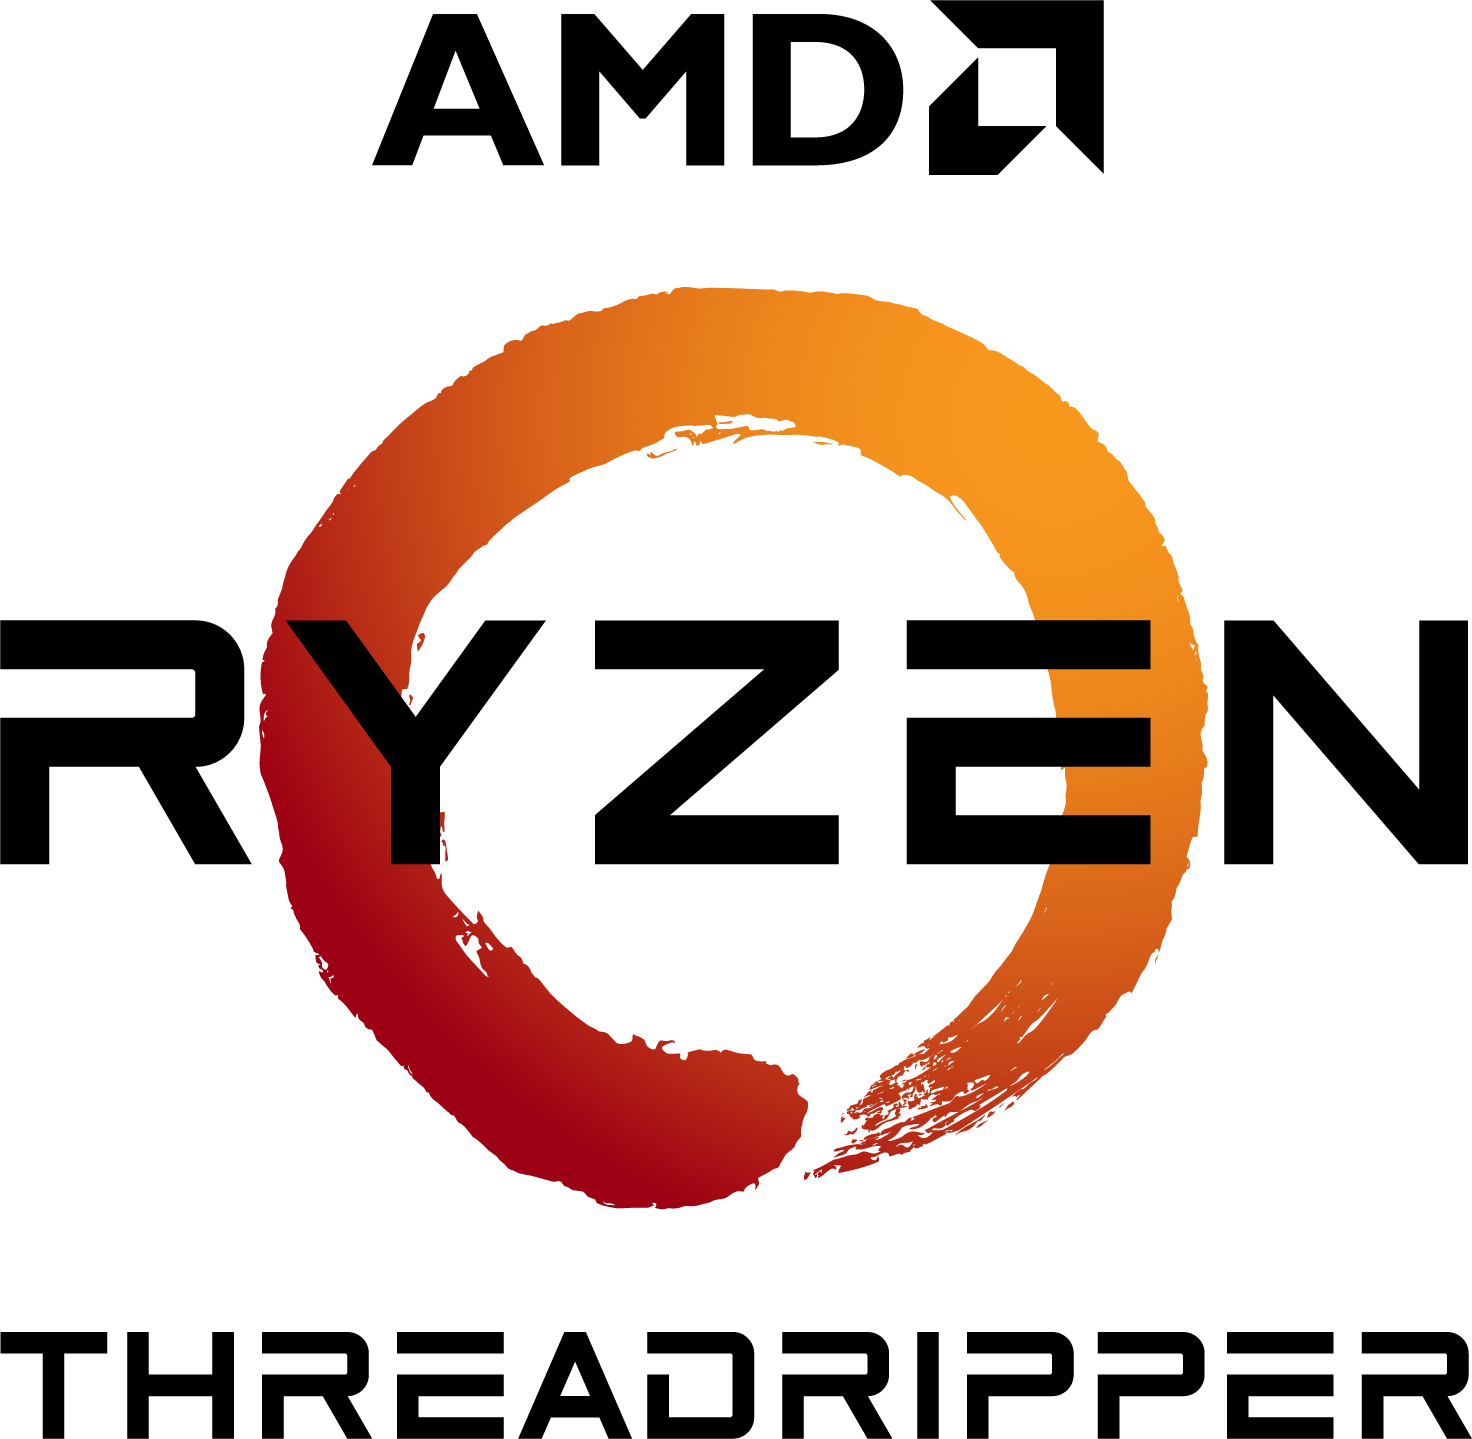 AMD Servers, Storage, Desktops and Performance Workstations